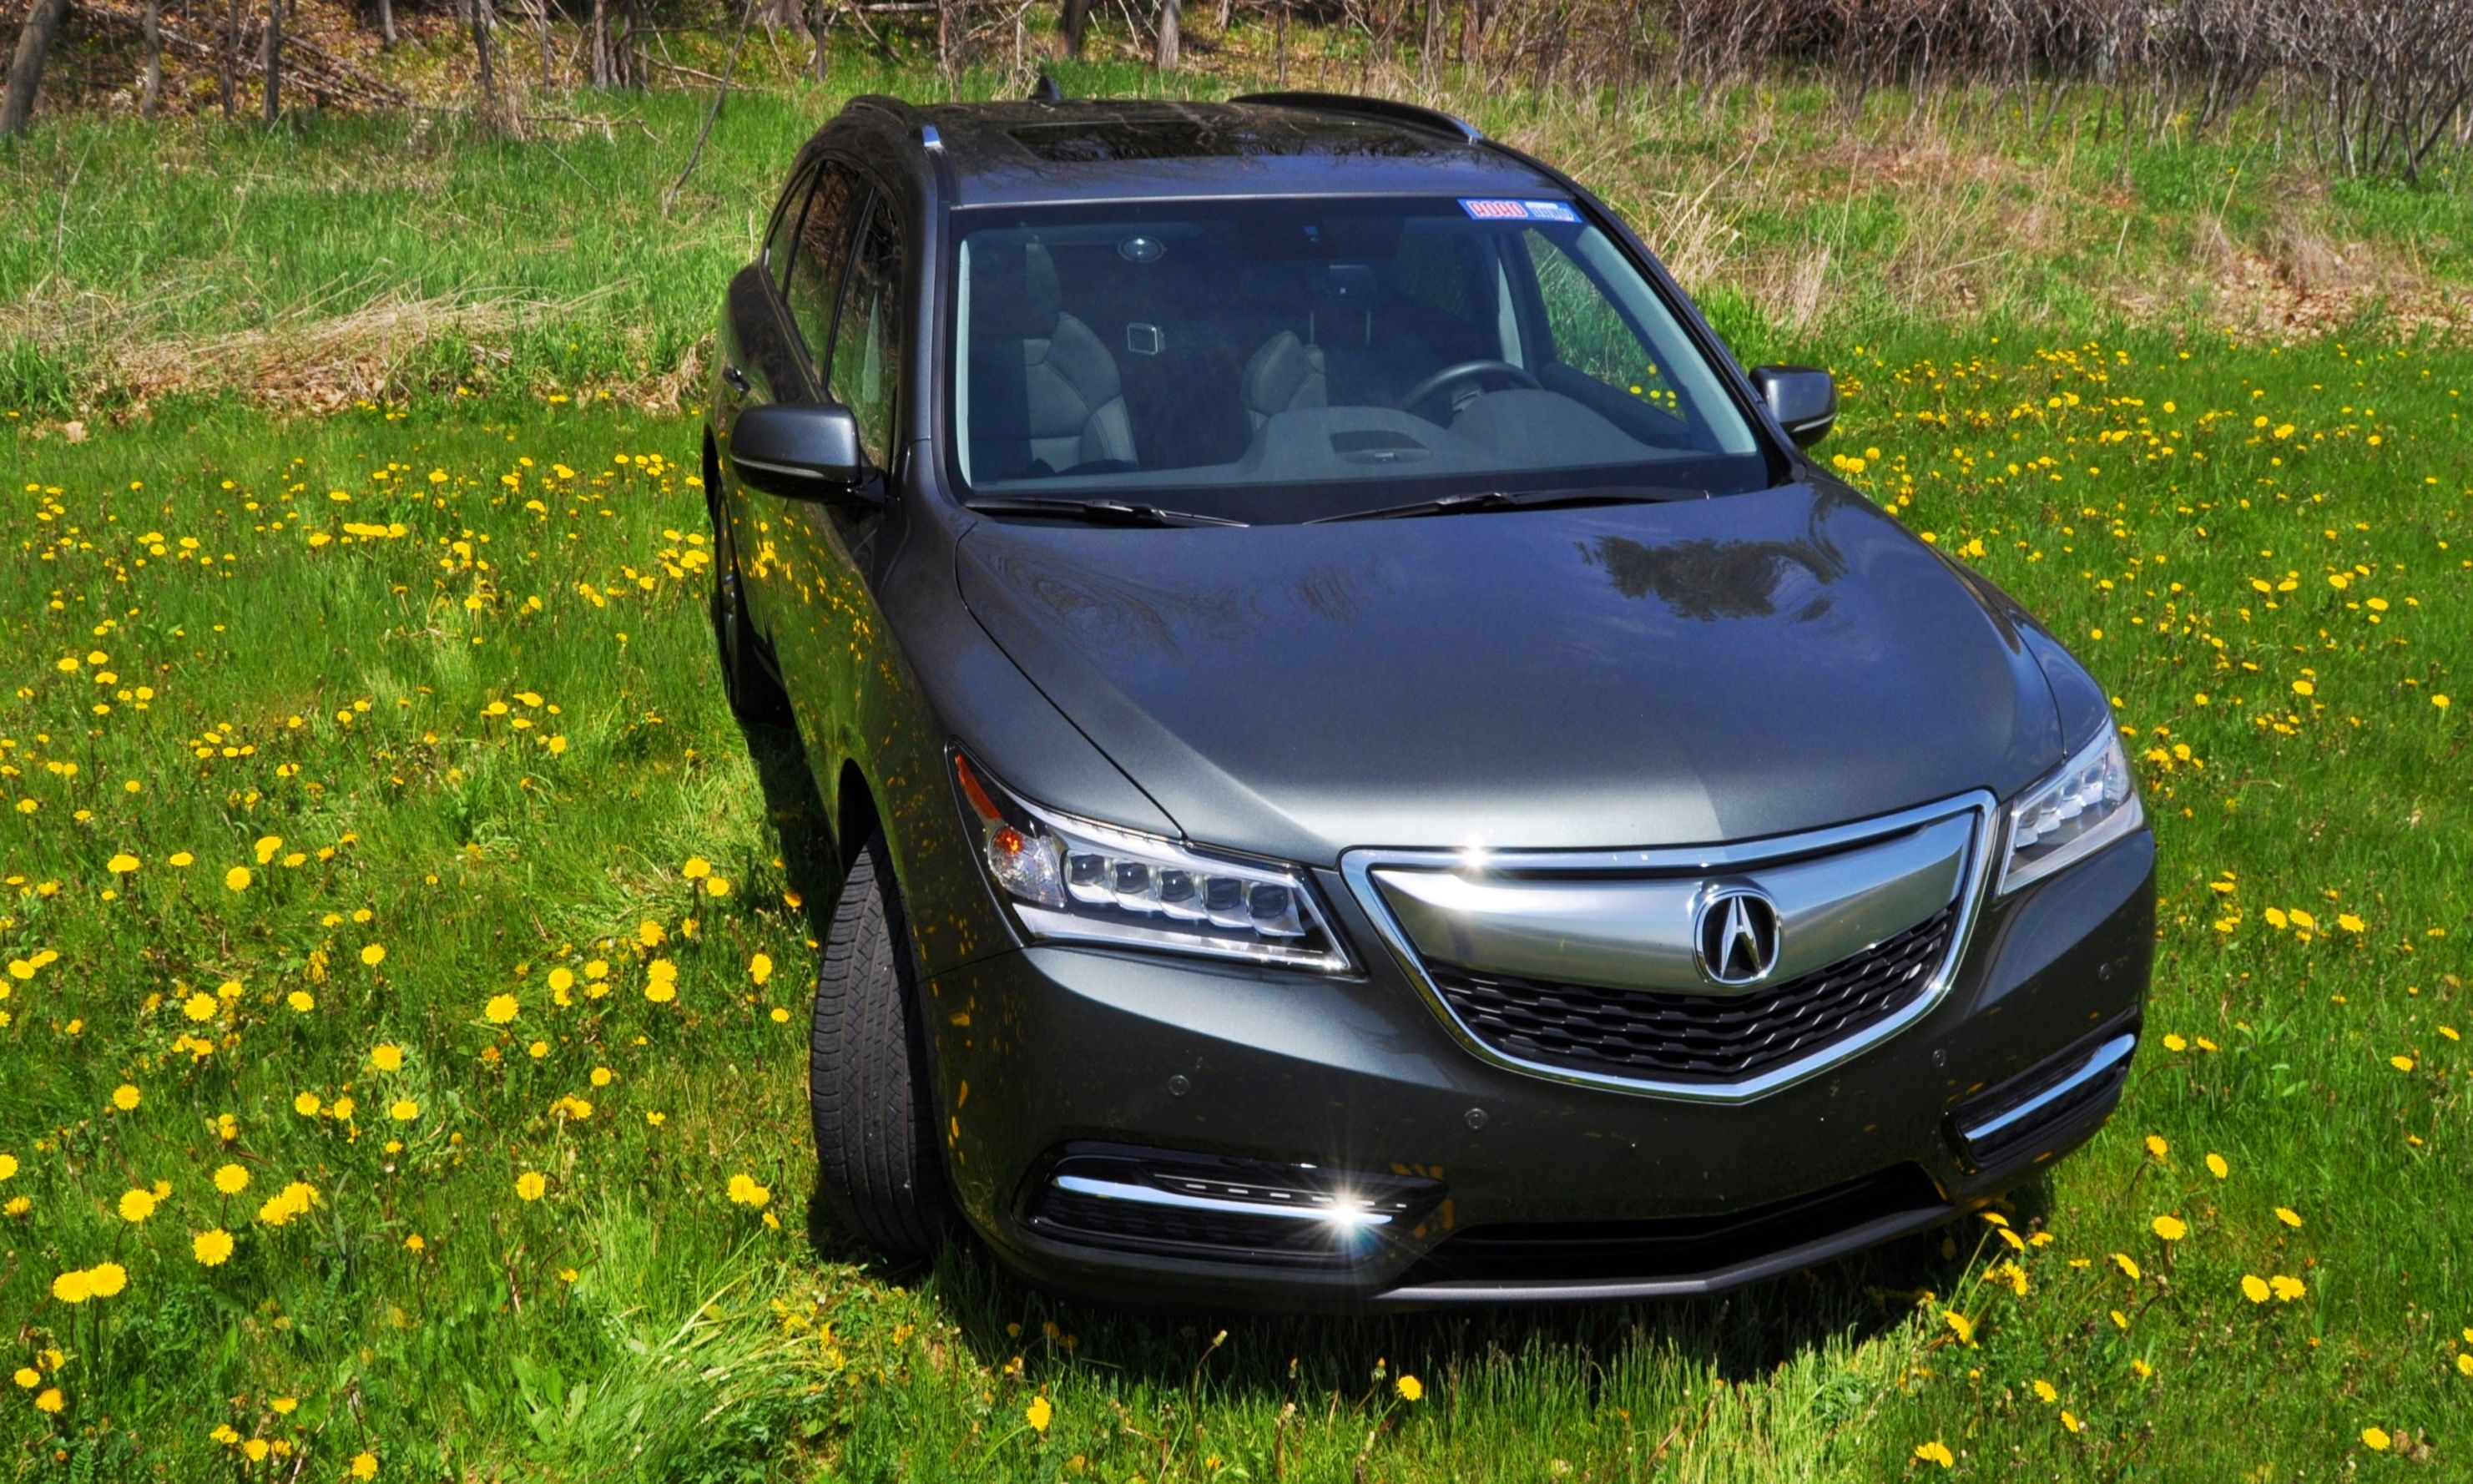 Road Test Review – 2014 Acura MDX SH AWD Is Premium and Posh 7 Seat